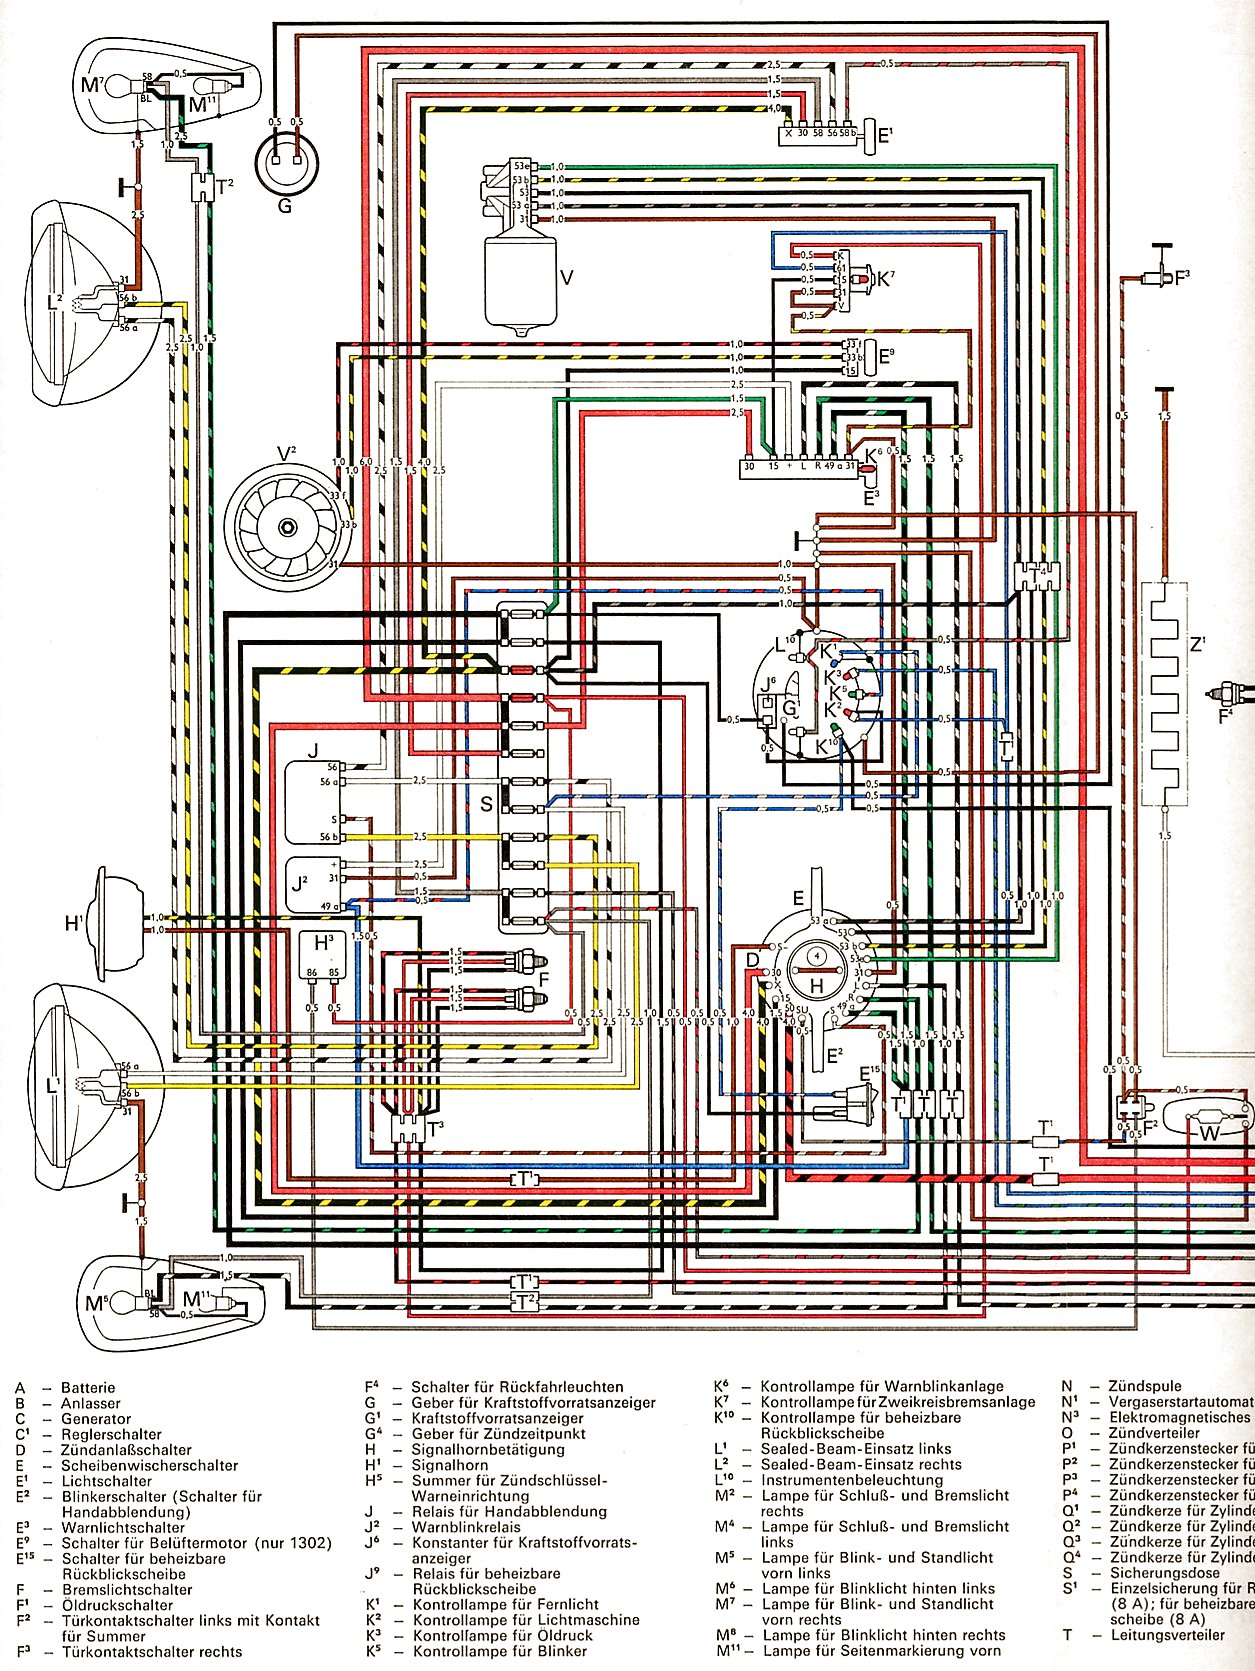 1300_and_1302_USA_from_August_1971 1 wiring diagram shoptalkforums com 1972 beetle wiring diagram at bayanpartner.co